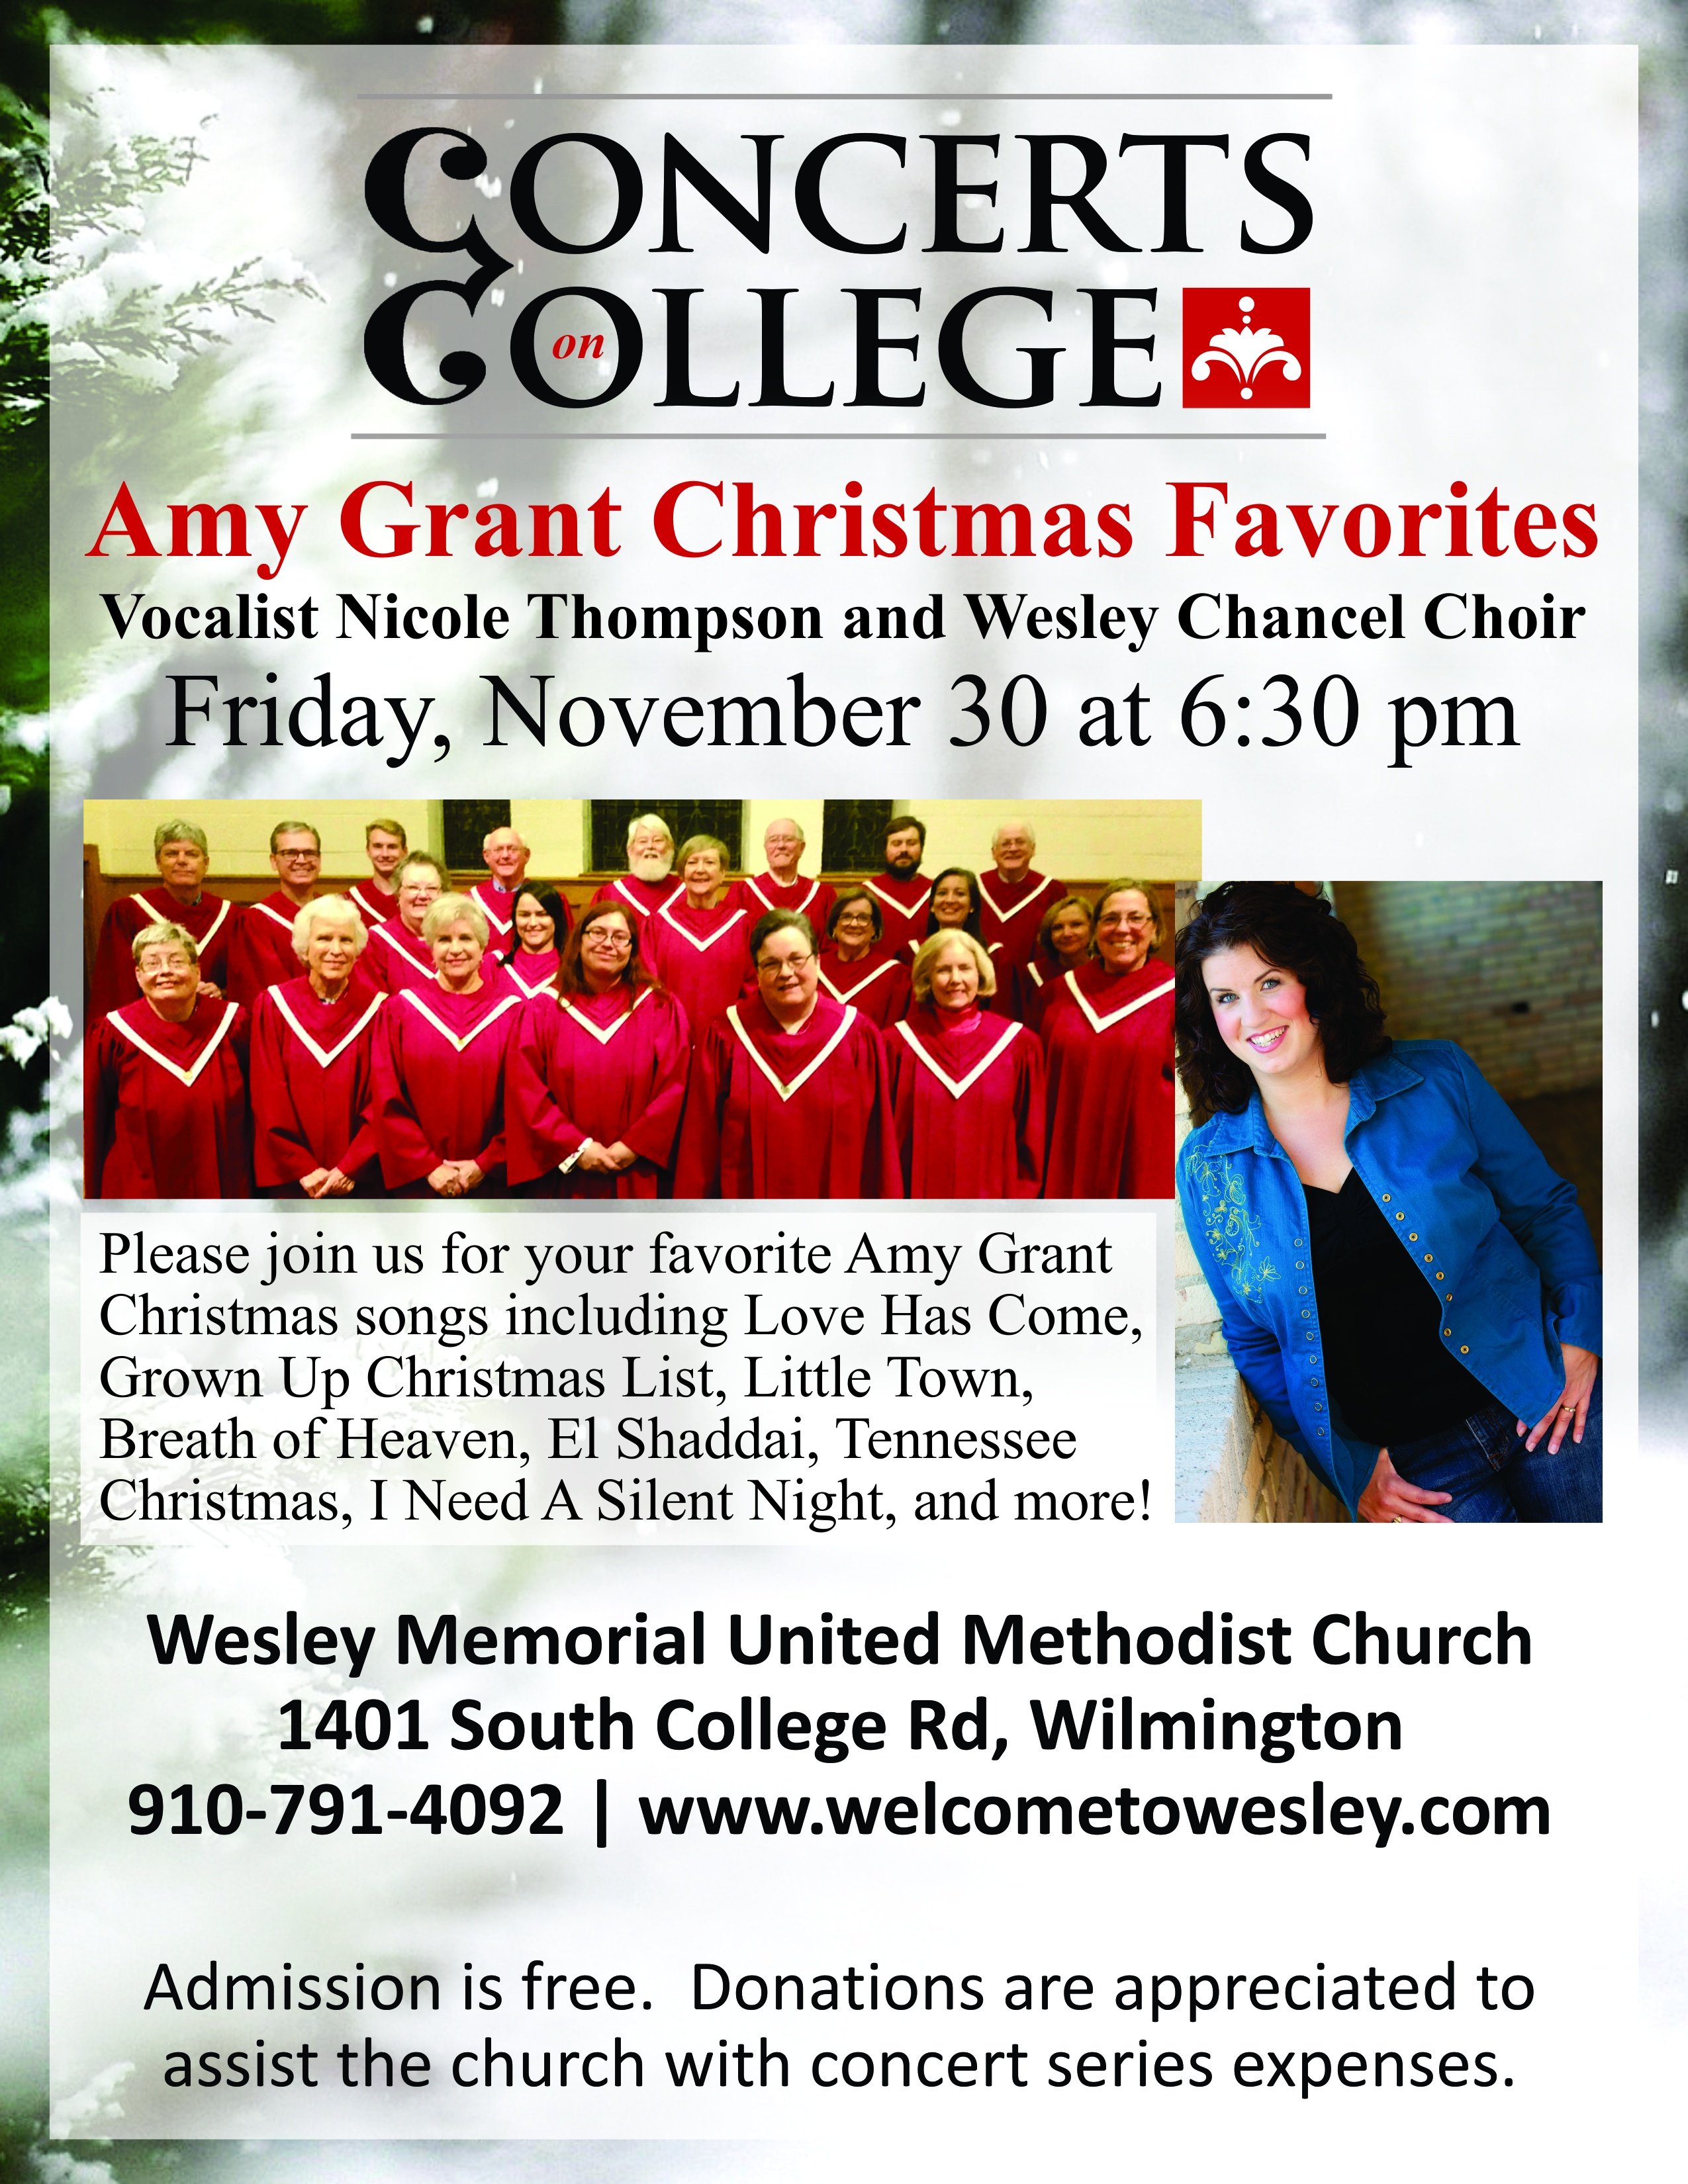 Concerts on College: Amy Grant Christmas Favorites